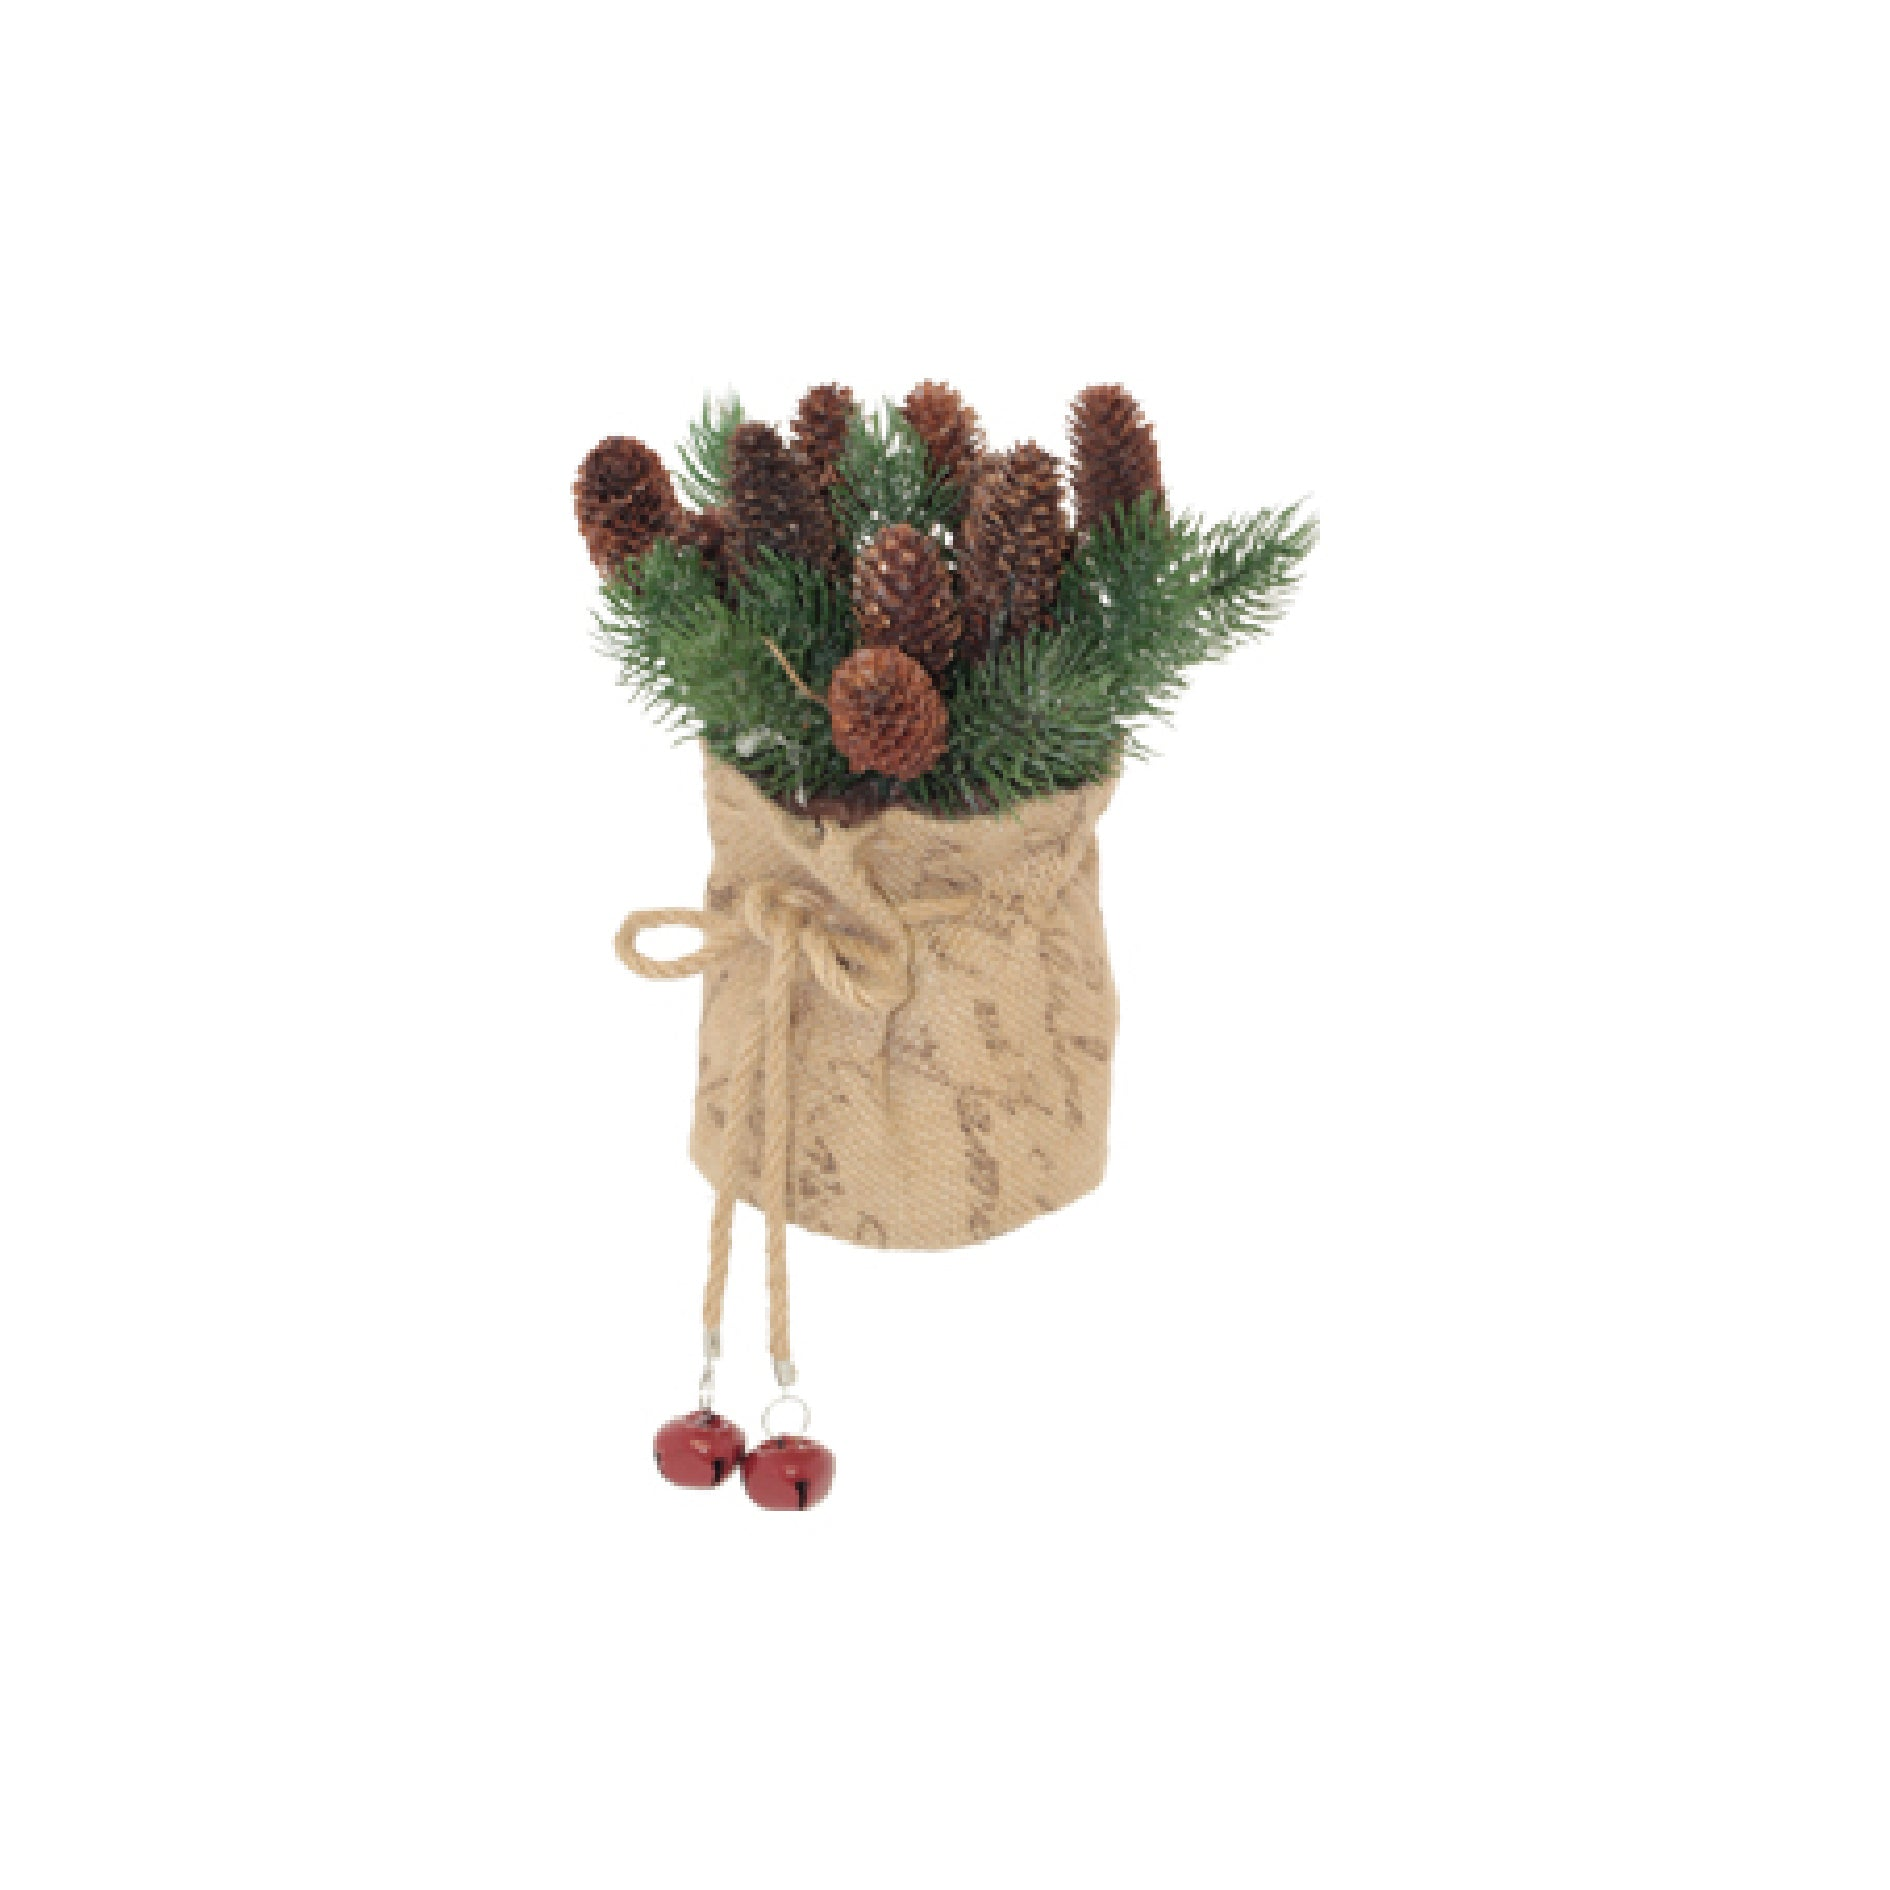 PINECONE PINE NEEDLE HESSIAN ARRANGEMENT